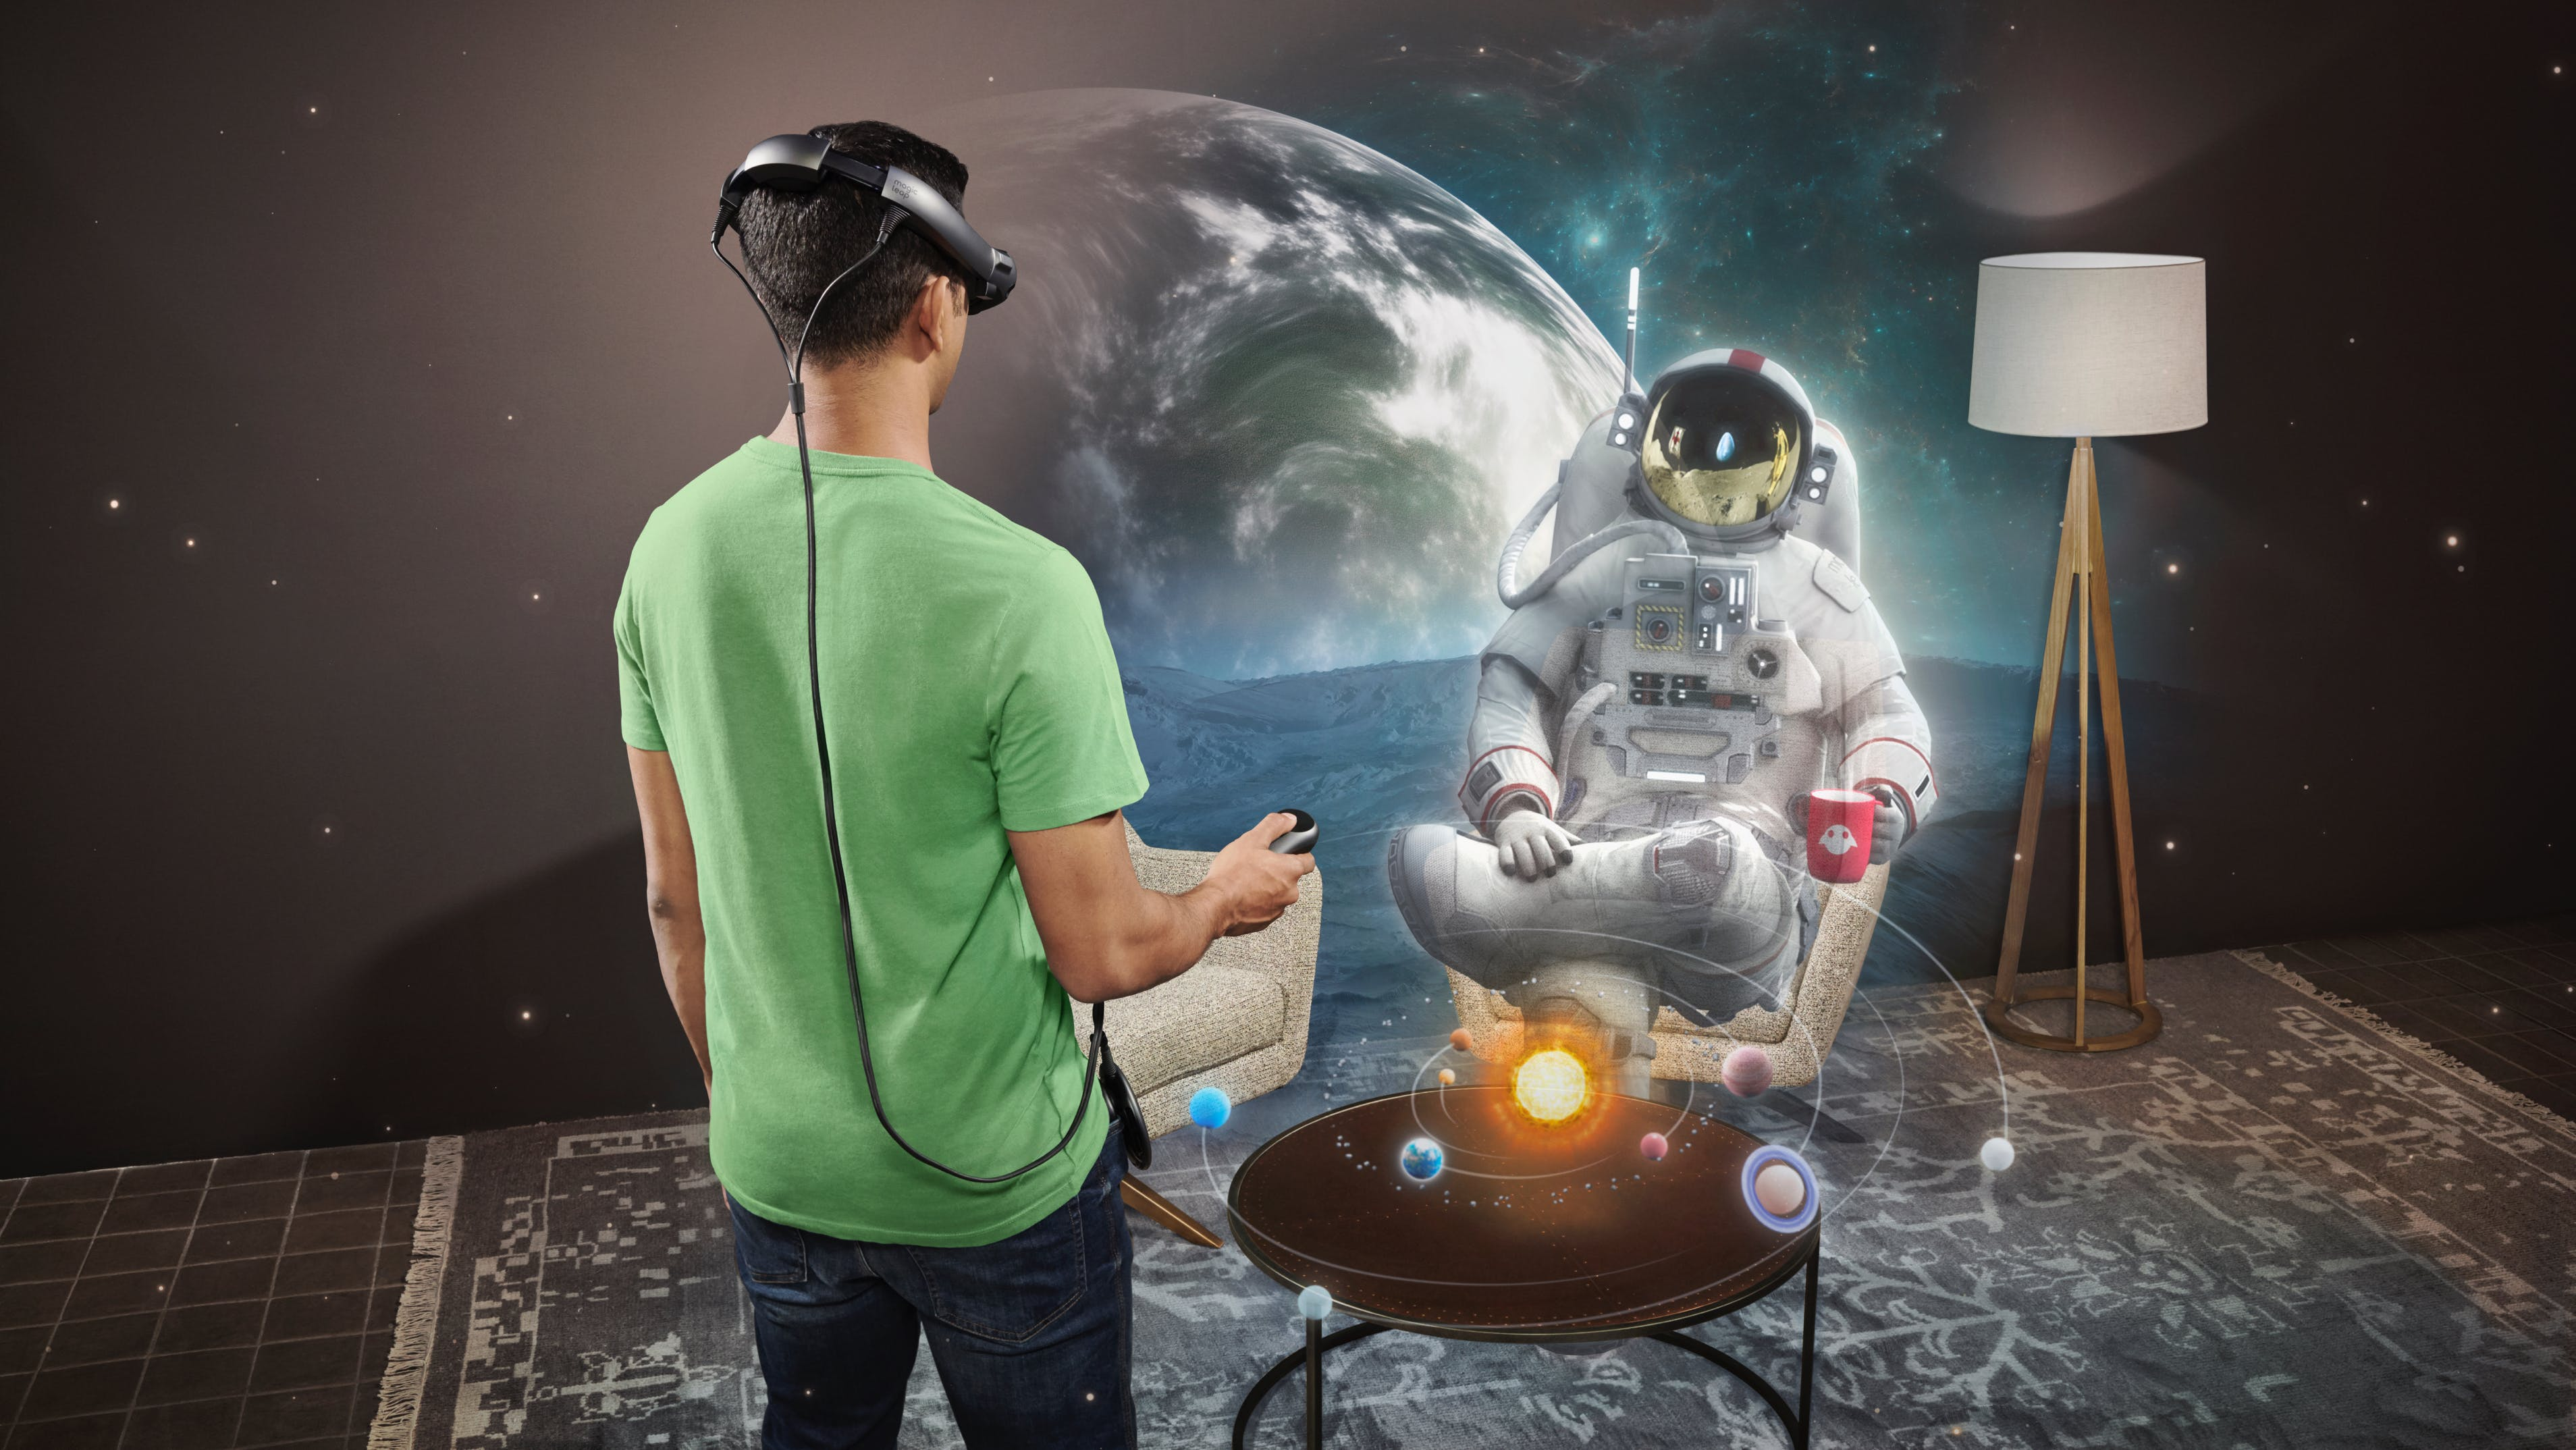 Using Magic Leap 1 to see an astronaut sitting on the couch drinking tea.